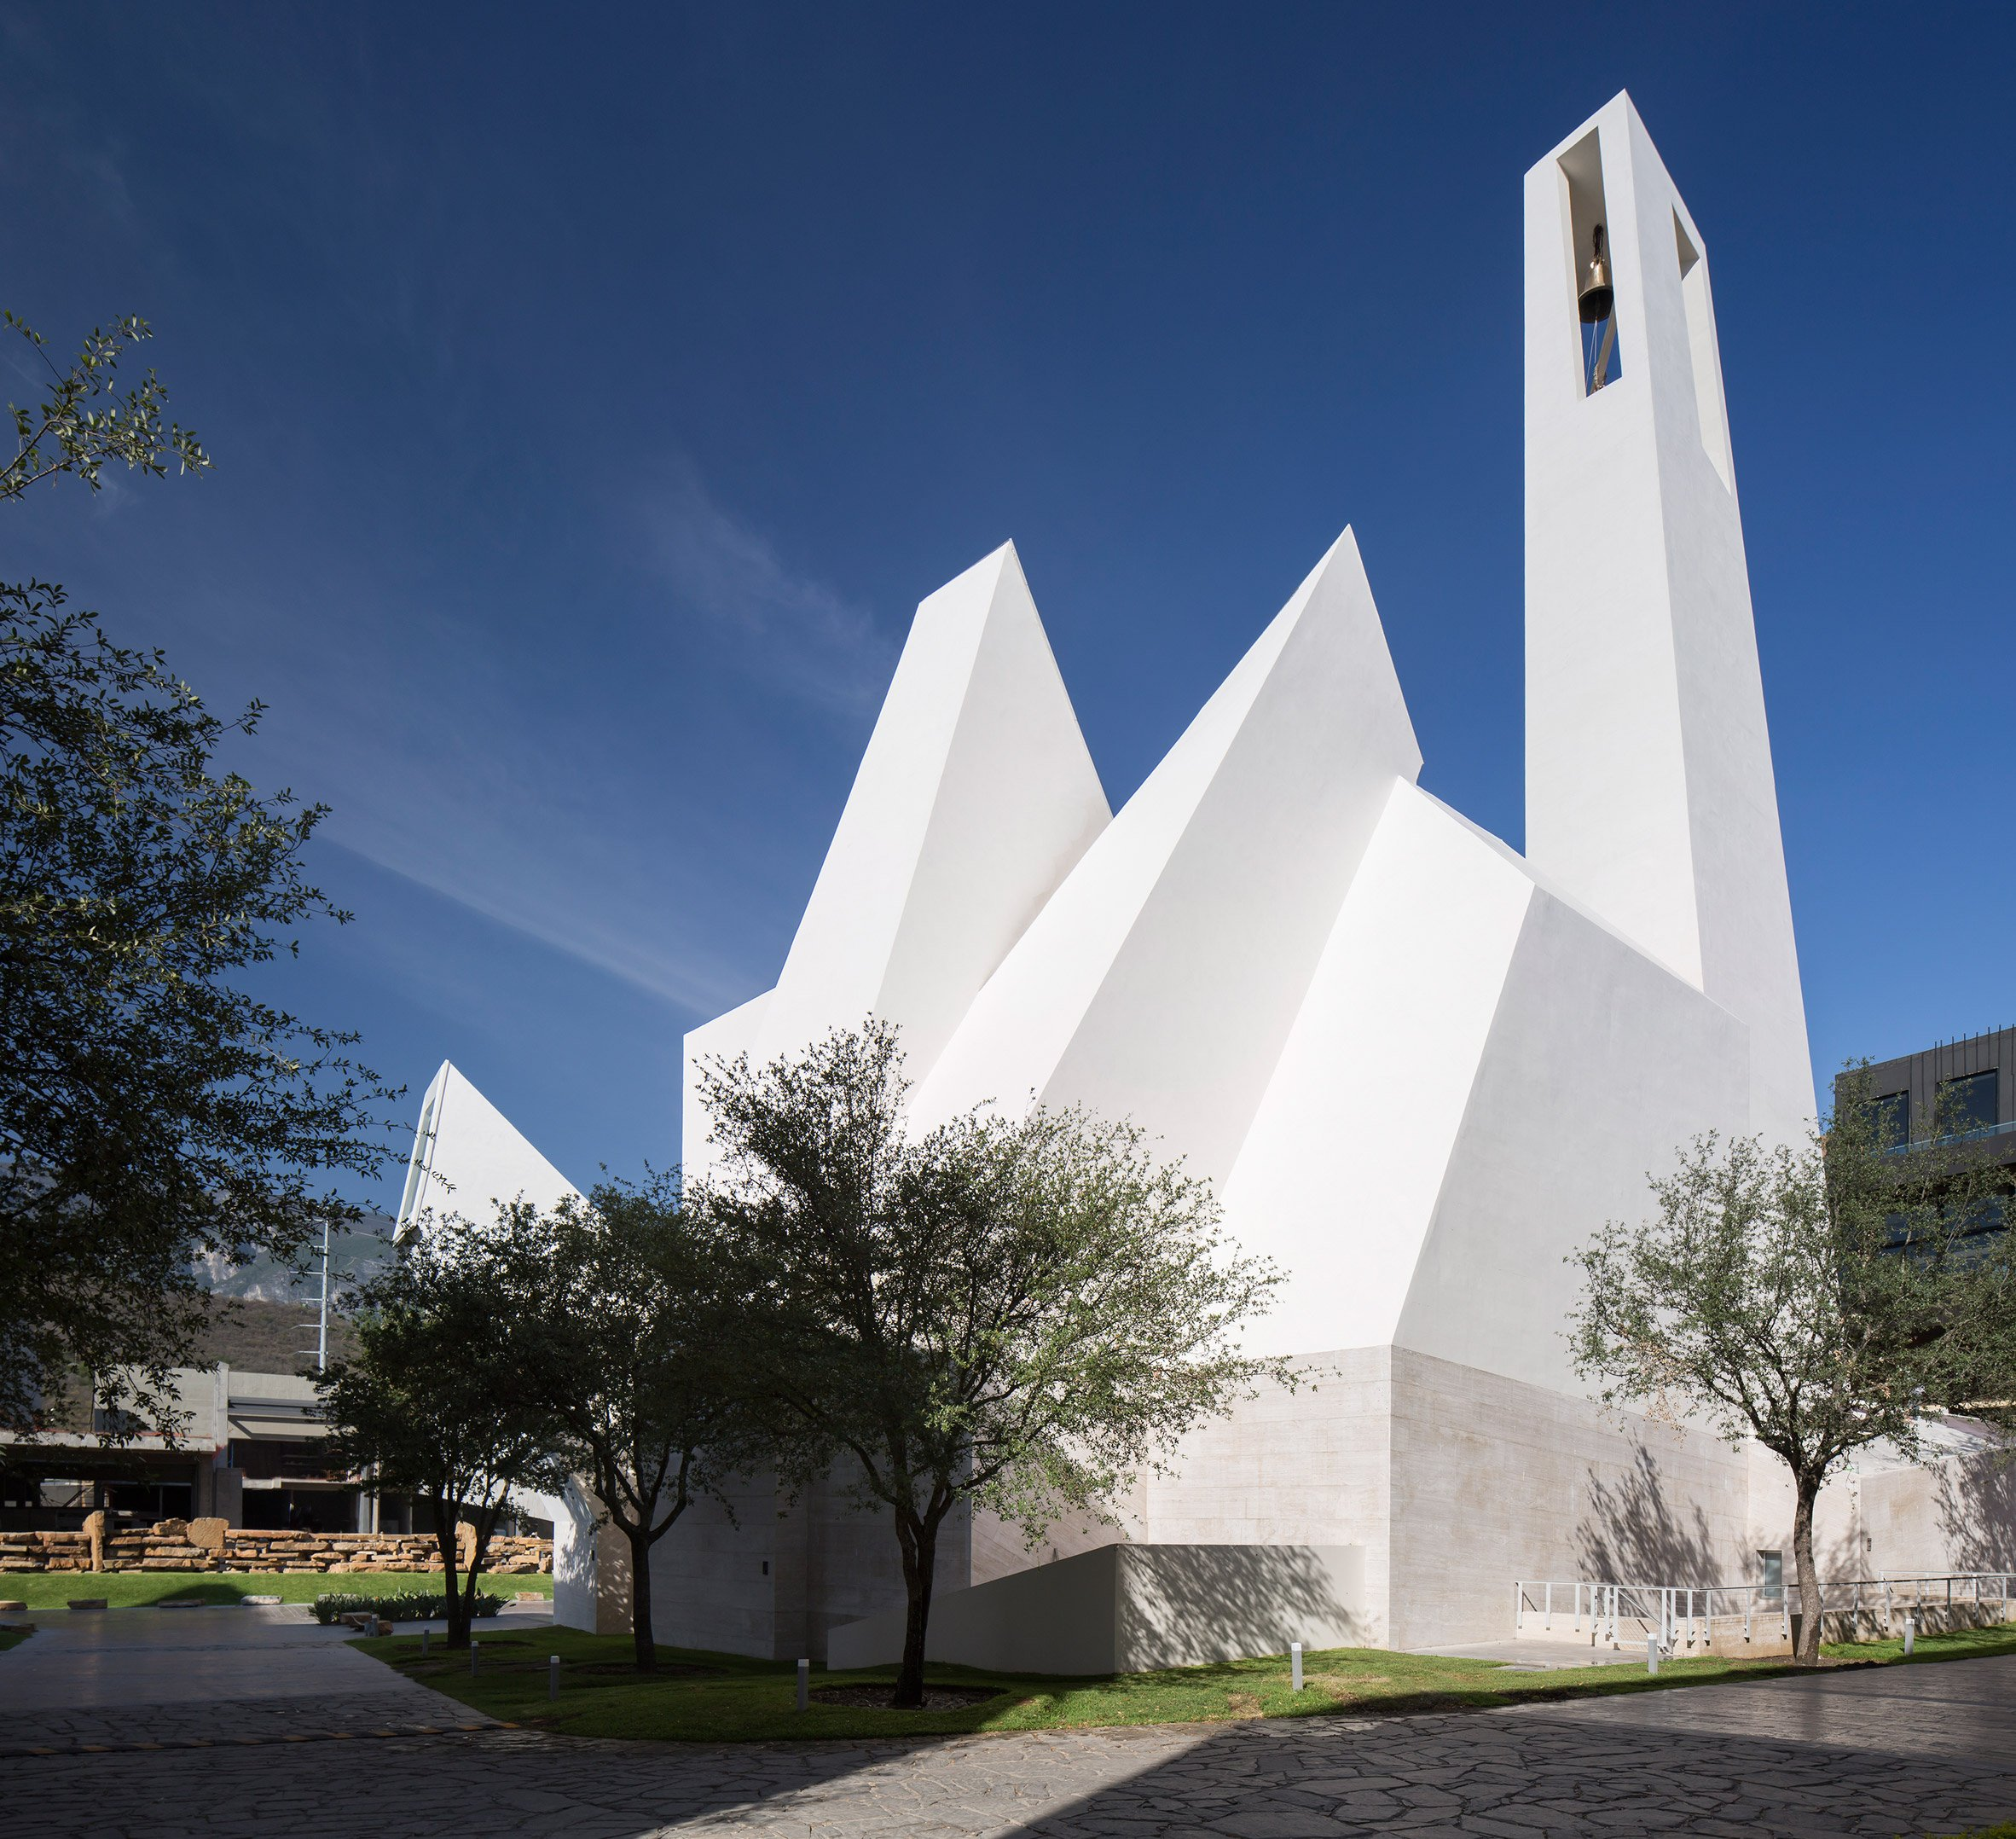 Crystalline church by Moneo Brock sits against a mountainous backdrop in Monterrey